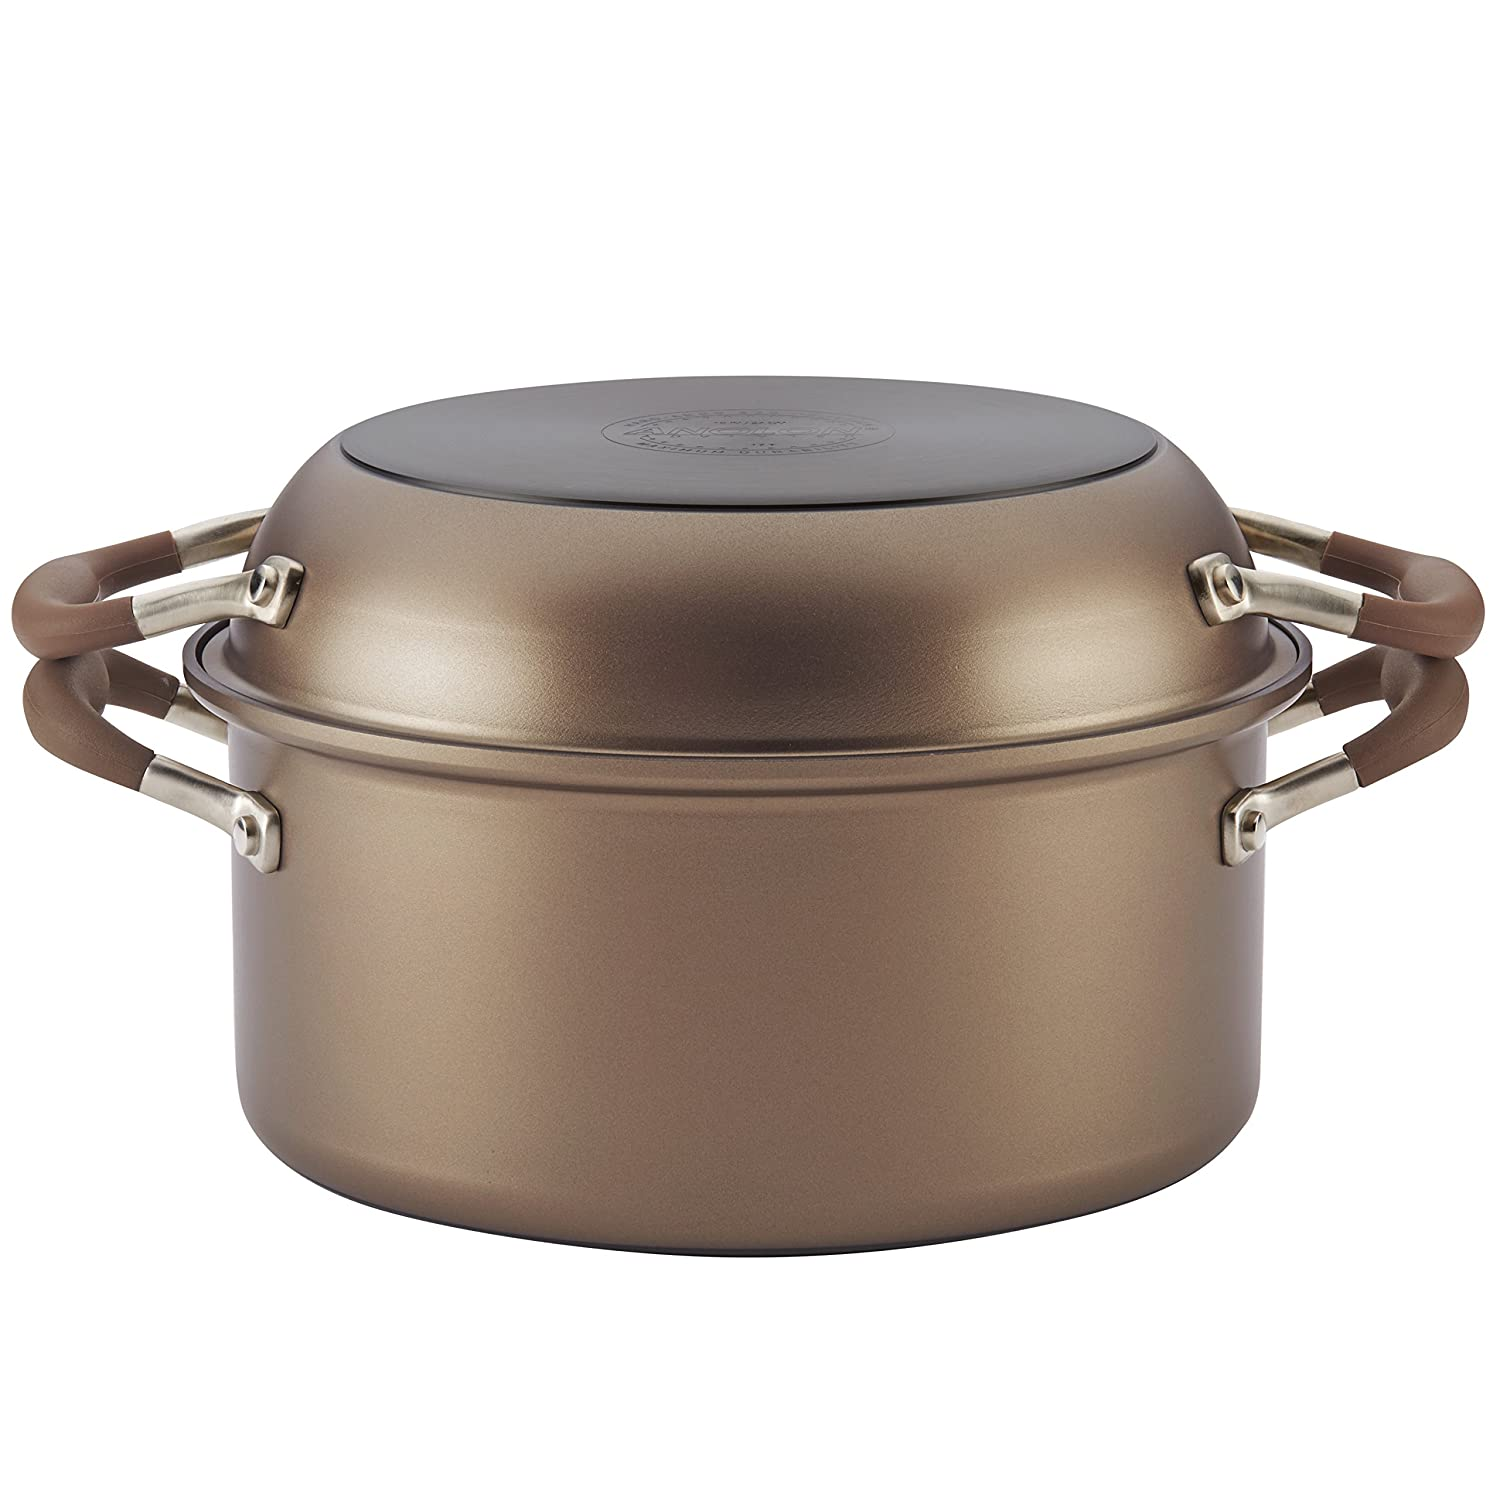 Anolon 83868 Advanced 2n1 Dutch Oven, 2Piece, Bronze